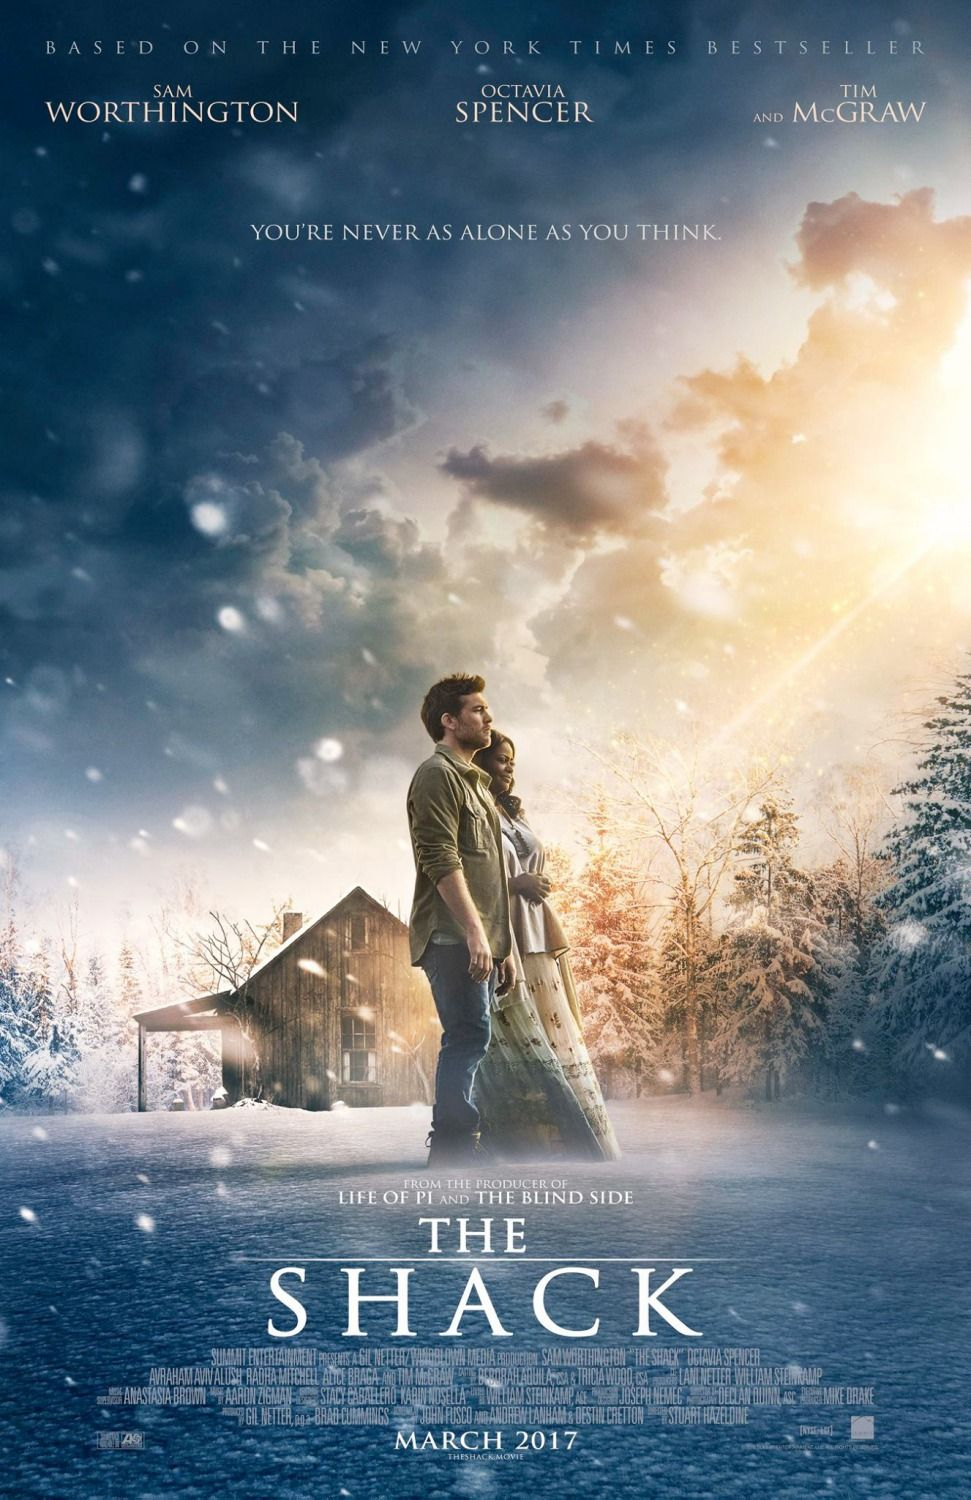 The Shack 2017 So Many Believe That It Is Love That Grows But